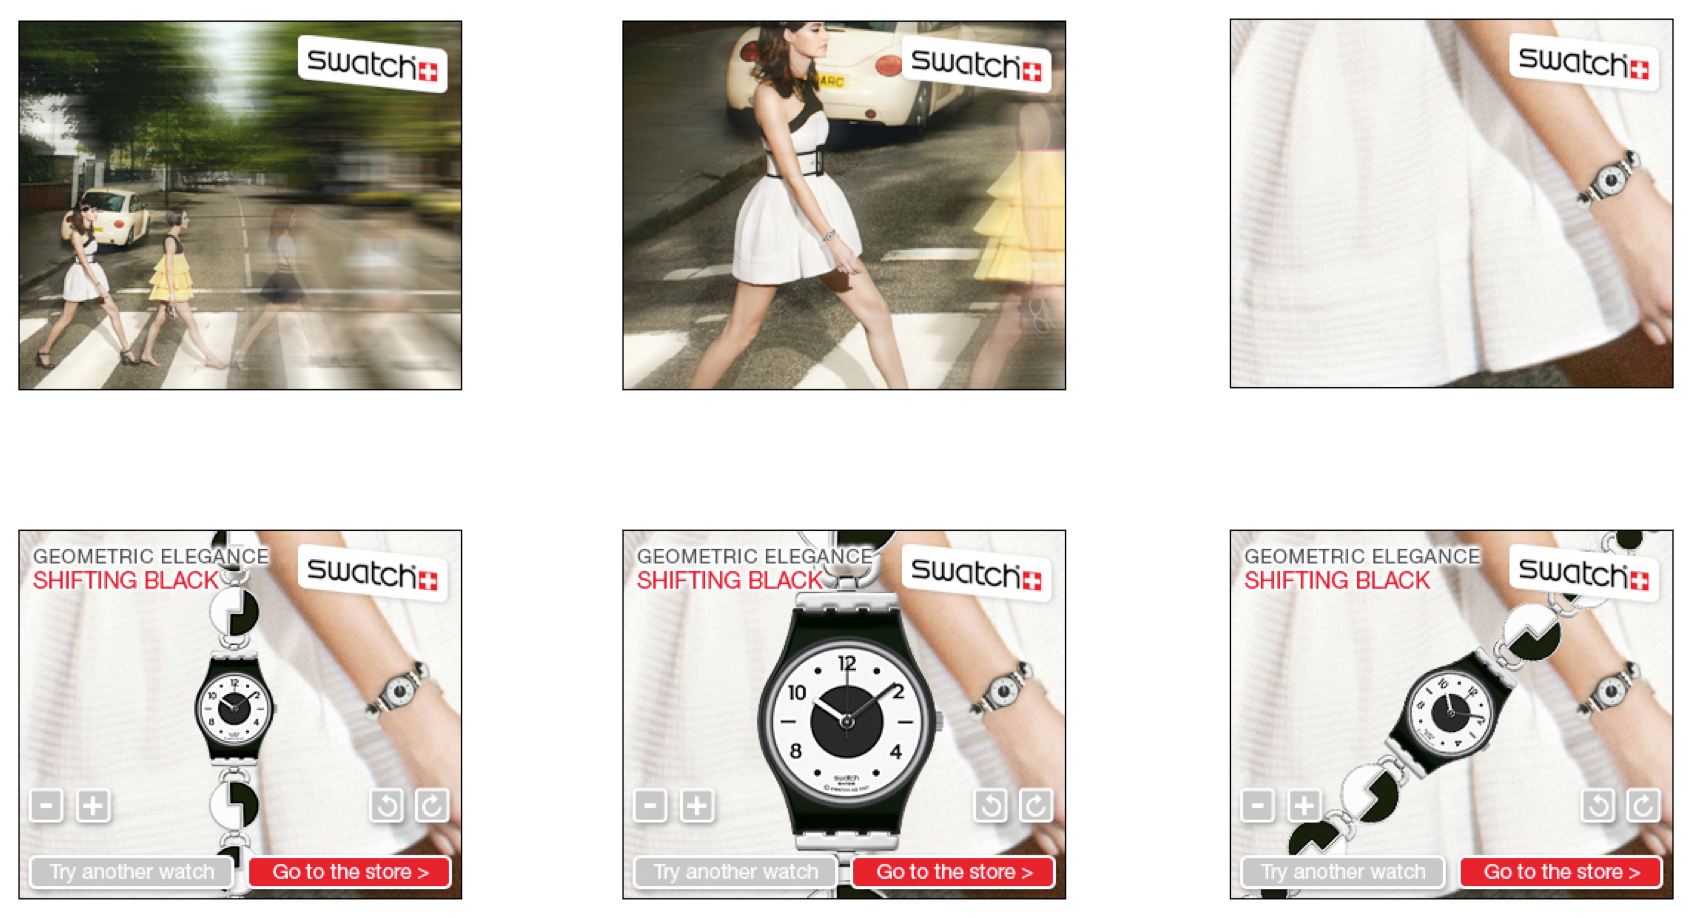 Swatch banner creative - Advertising - Web Design in Farnborough